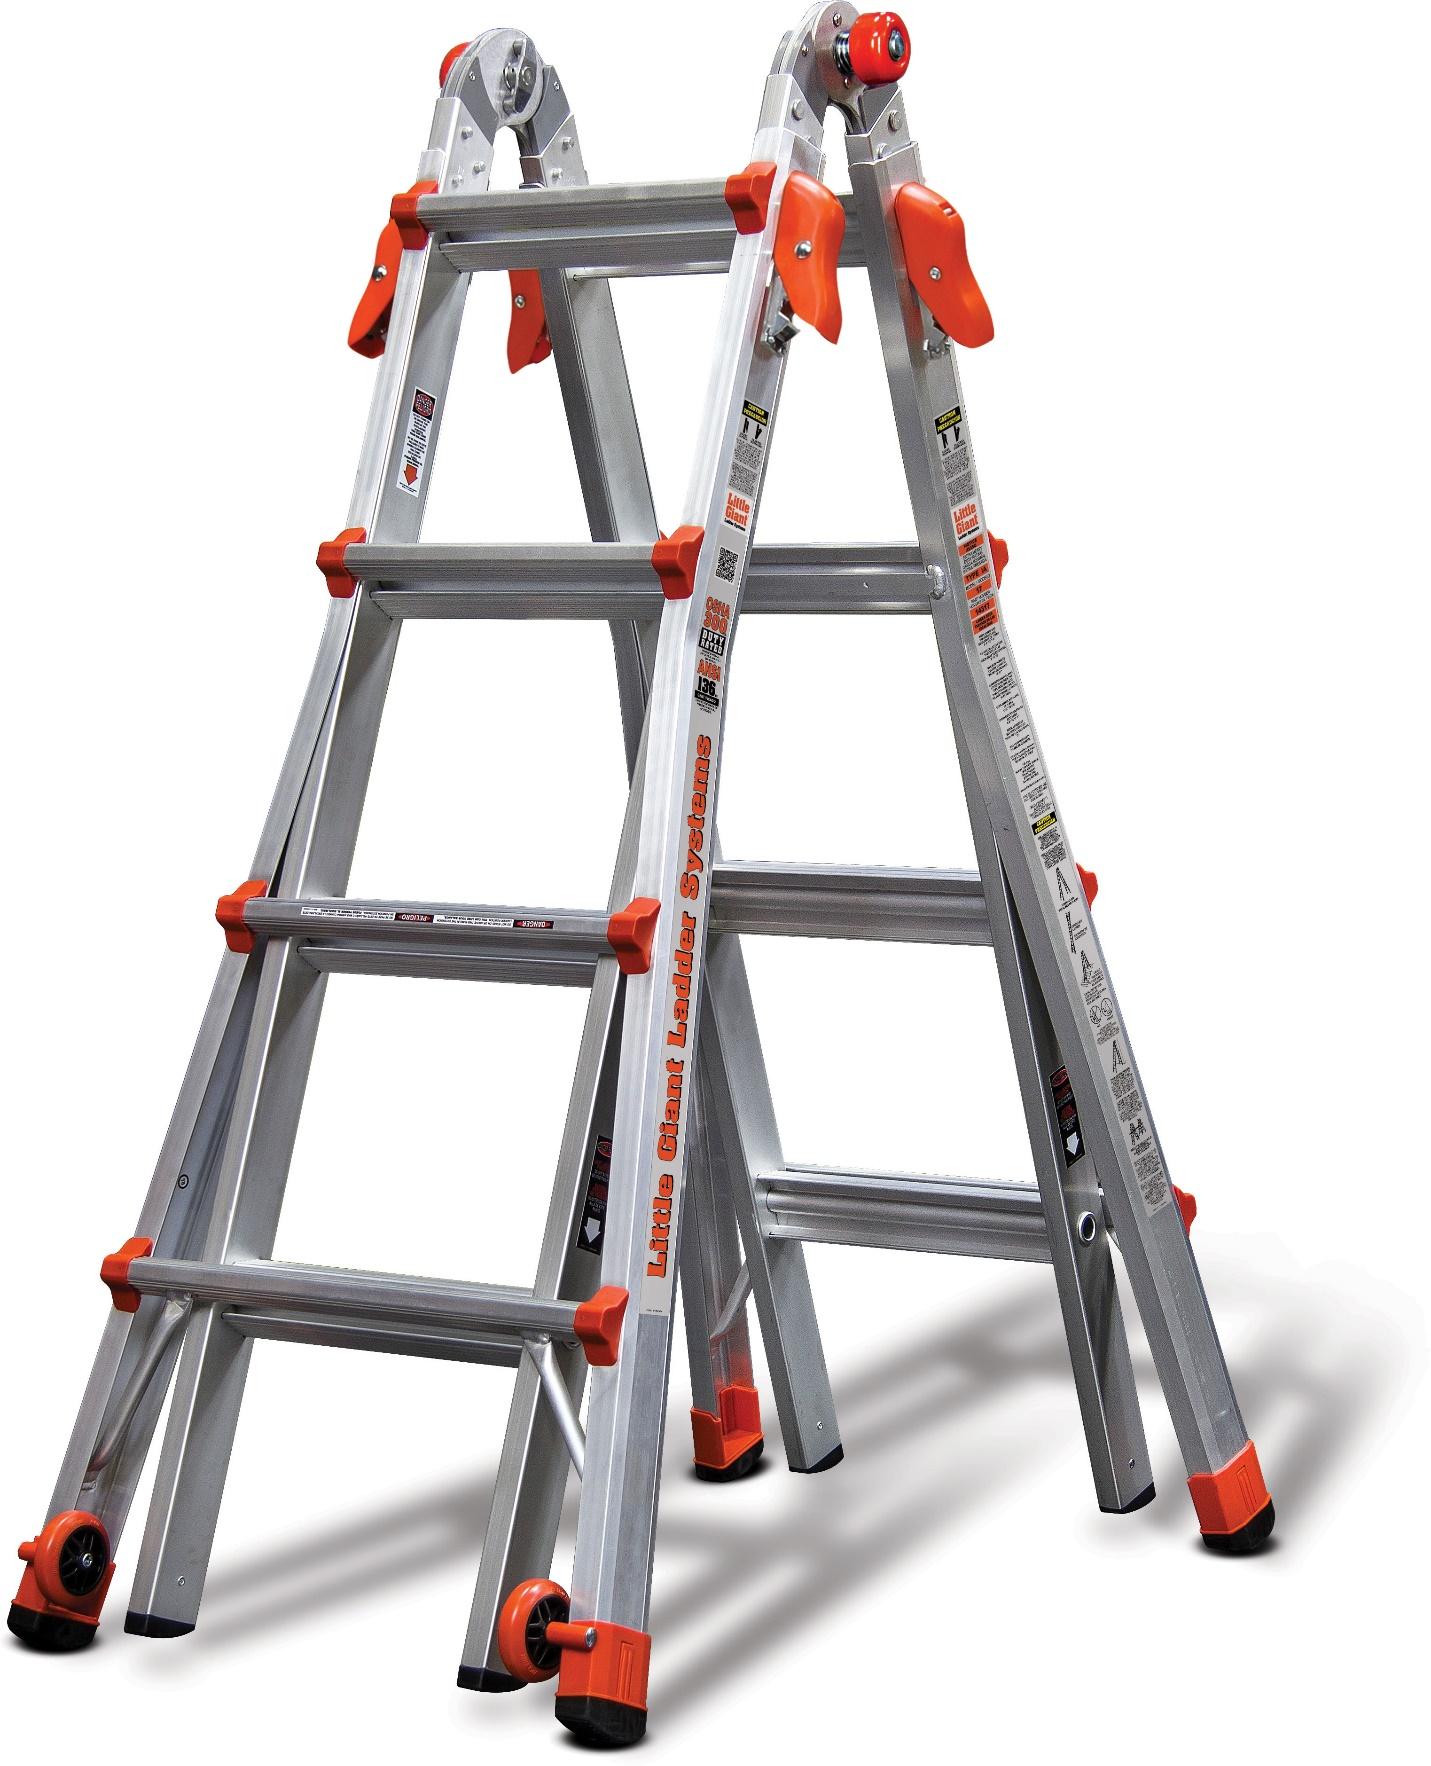 Little Giant offers extension ladders that take up as much room in your shed as one ladder but perform the duties of multiple ladders. Innovations from Little Giant include a foot ladder that does the job of 18 different types of ladders.